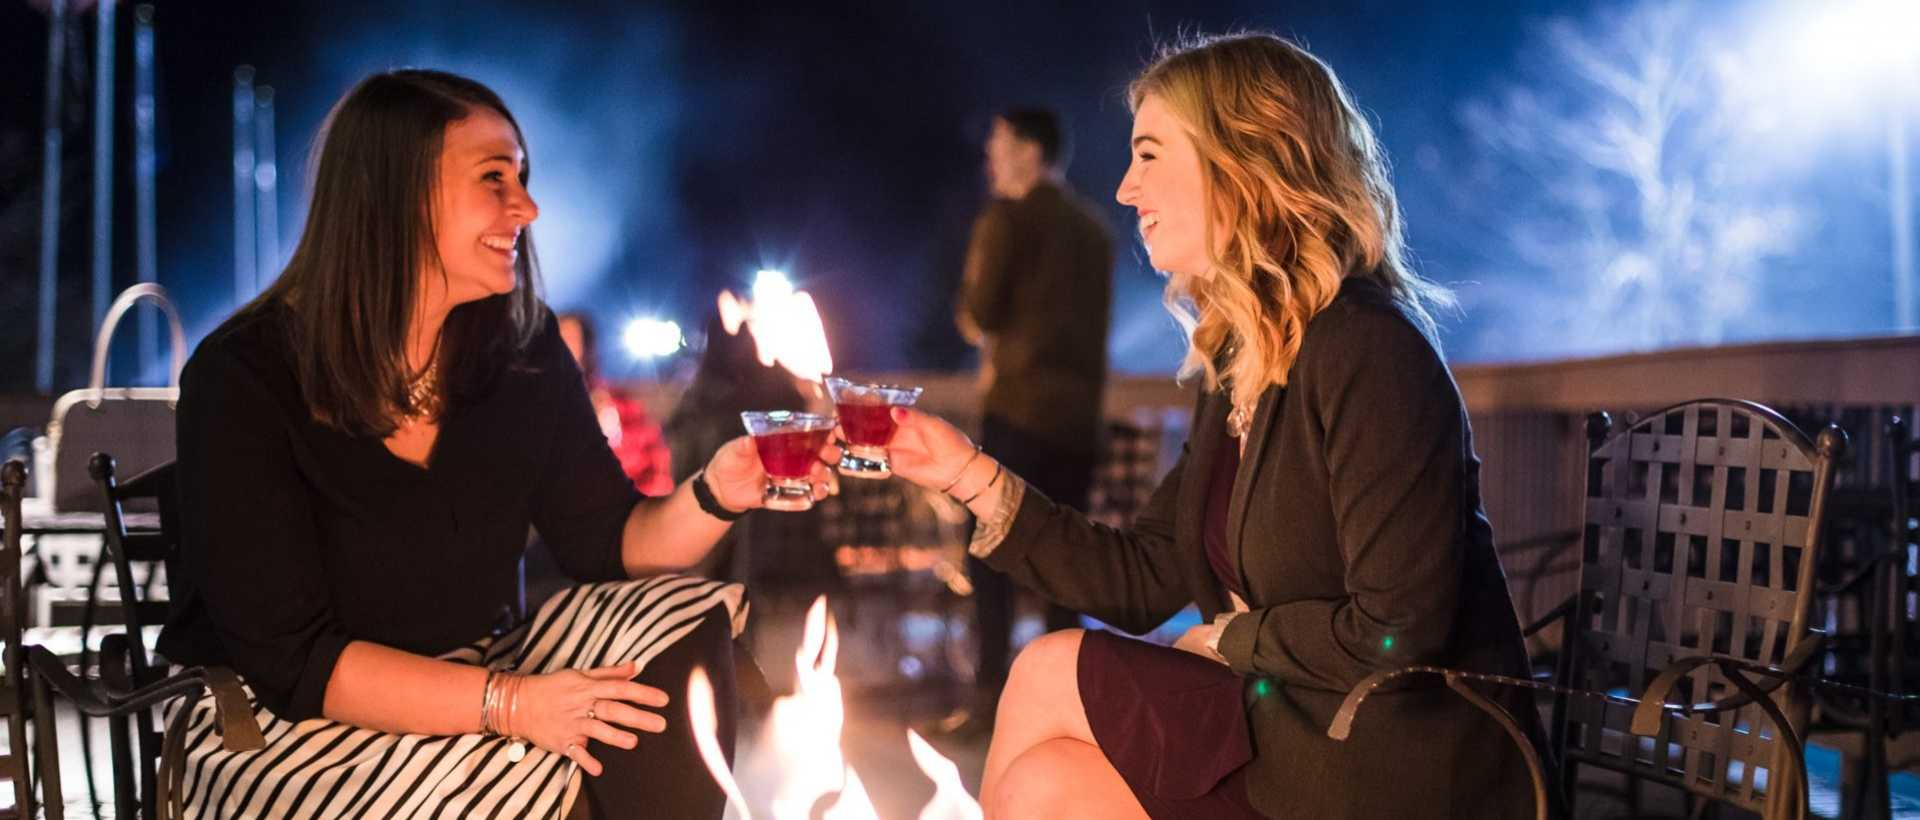 Two women enjoying drinks outdoors near a fire pit at Montage Mountain in Scranton, Lackawanna County, PA.